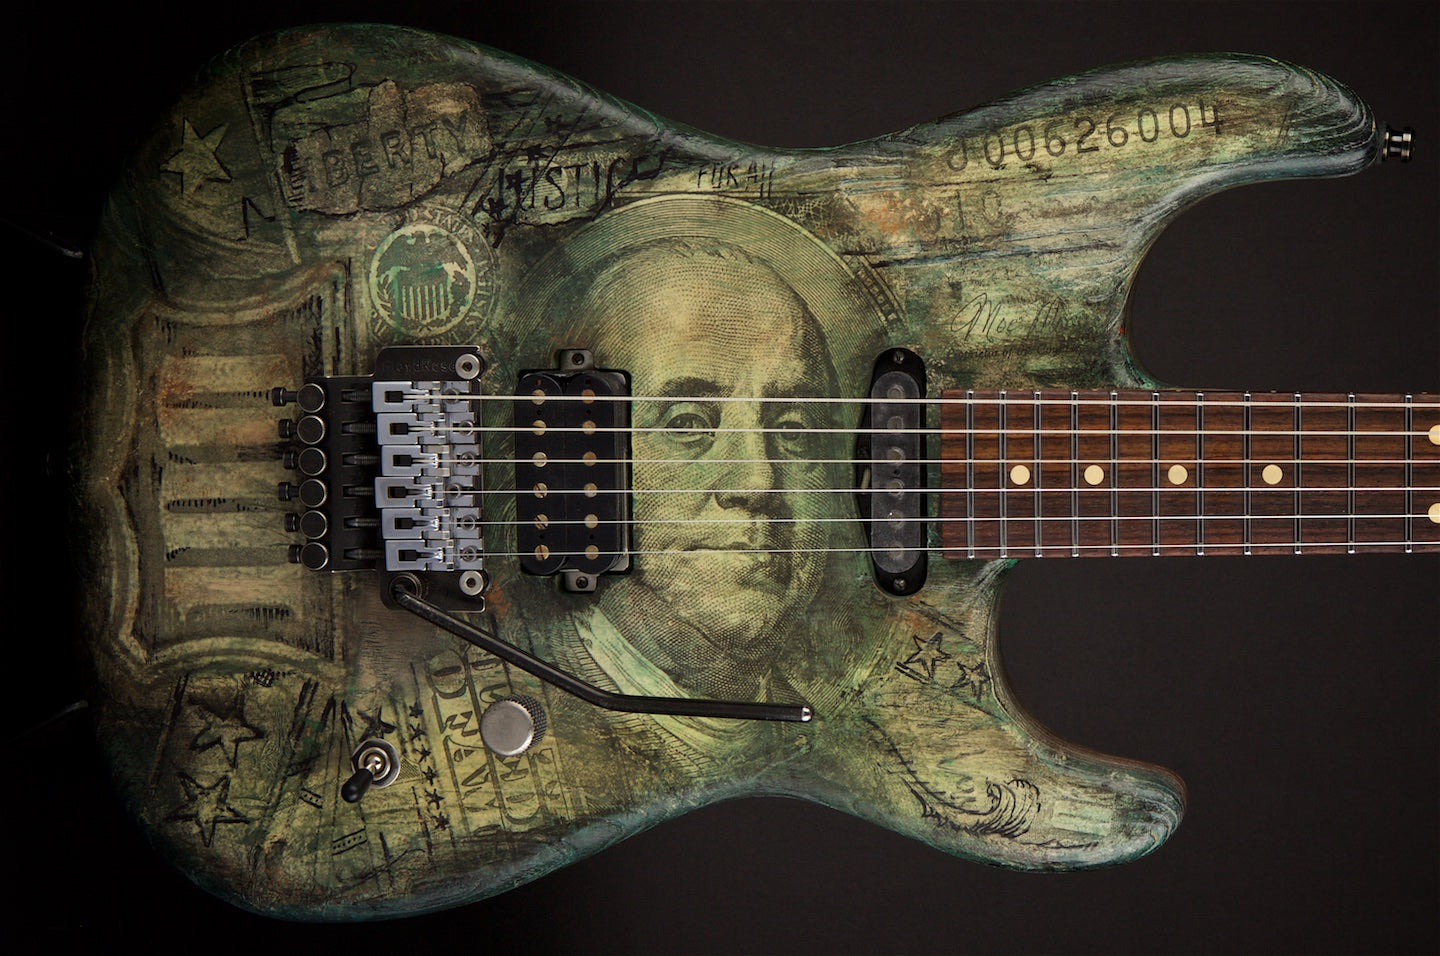 Luxxtone Guitars El Machete 22 $100 Dollar Bill # #0113